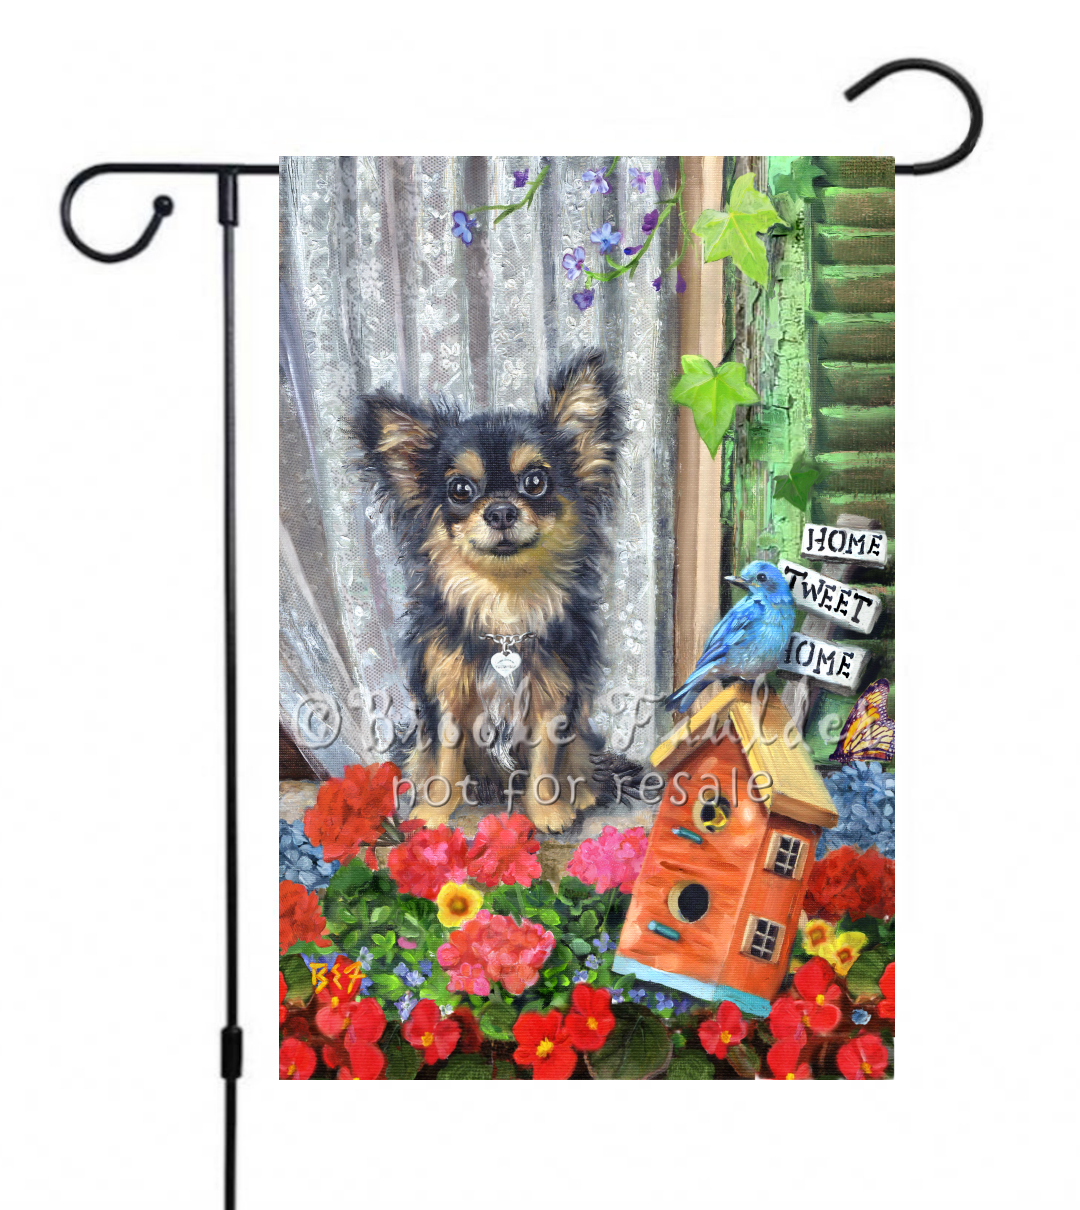 Summer garden flag with Chihuahua